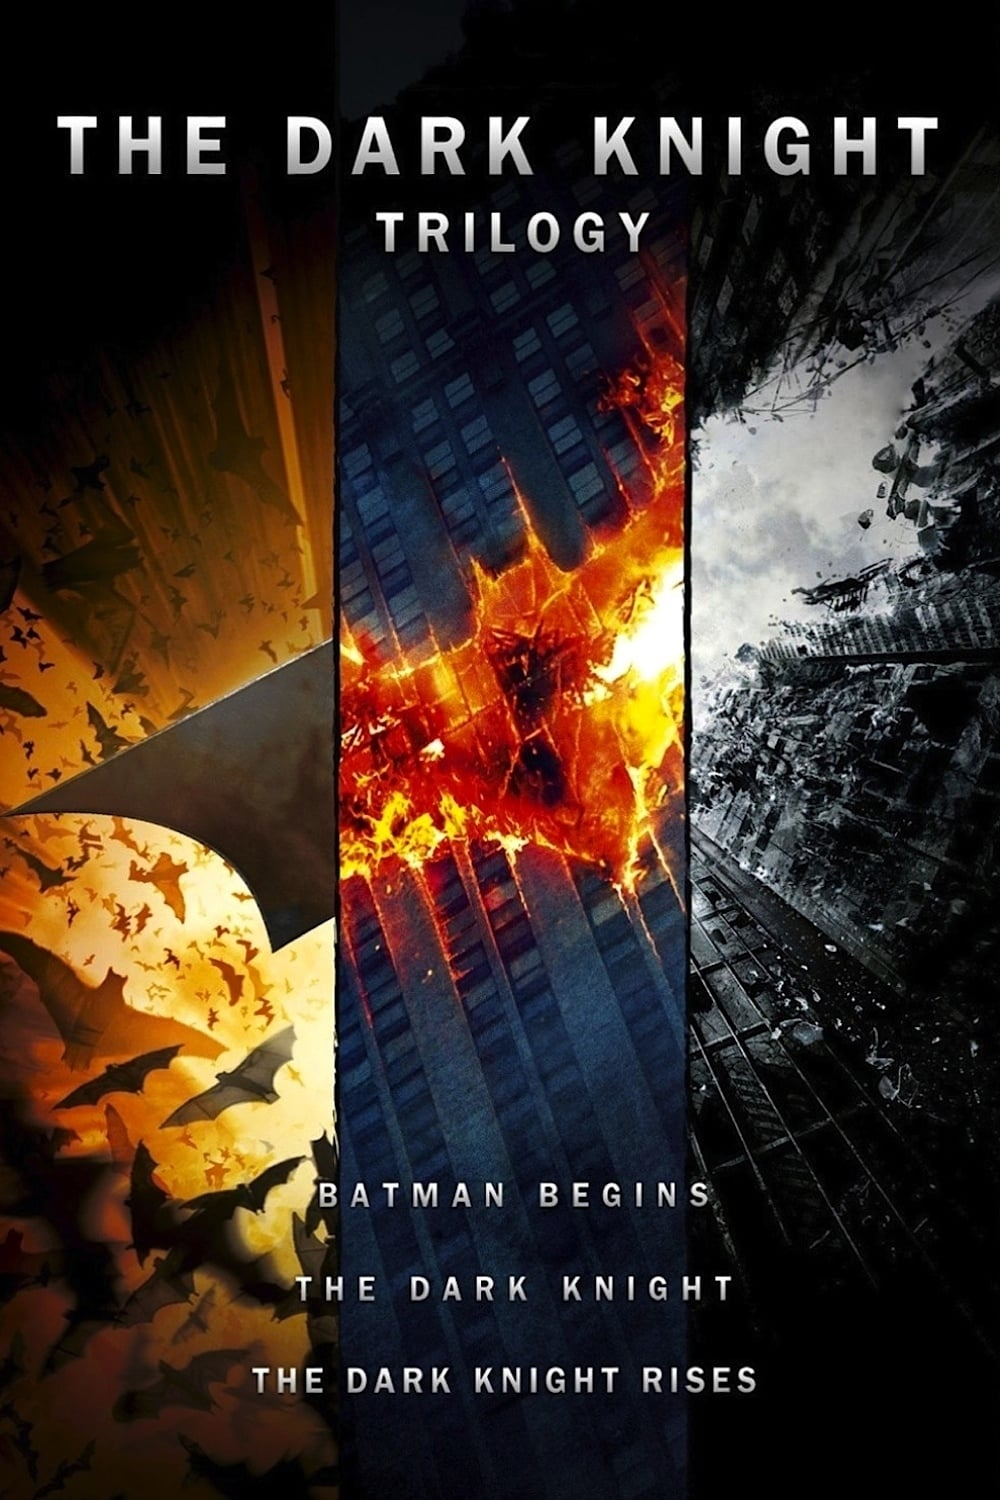 all movies from the dark knight collection saga are on